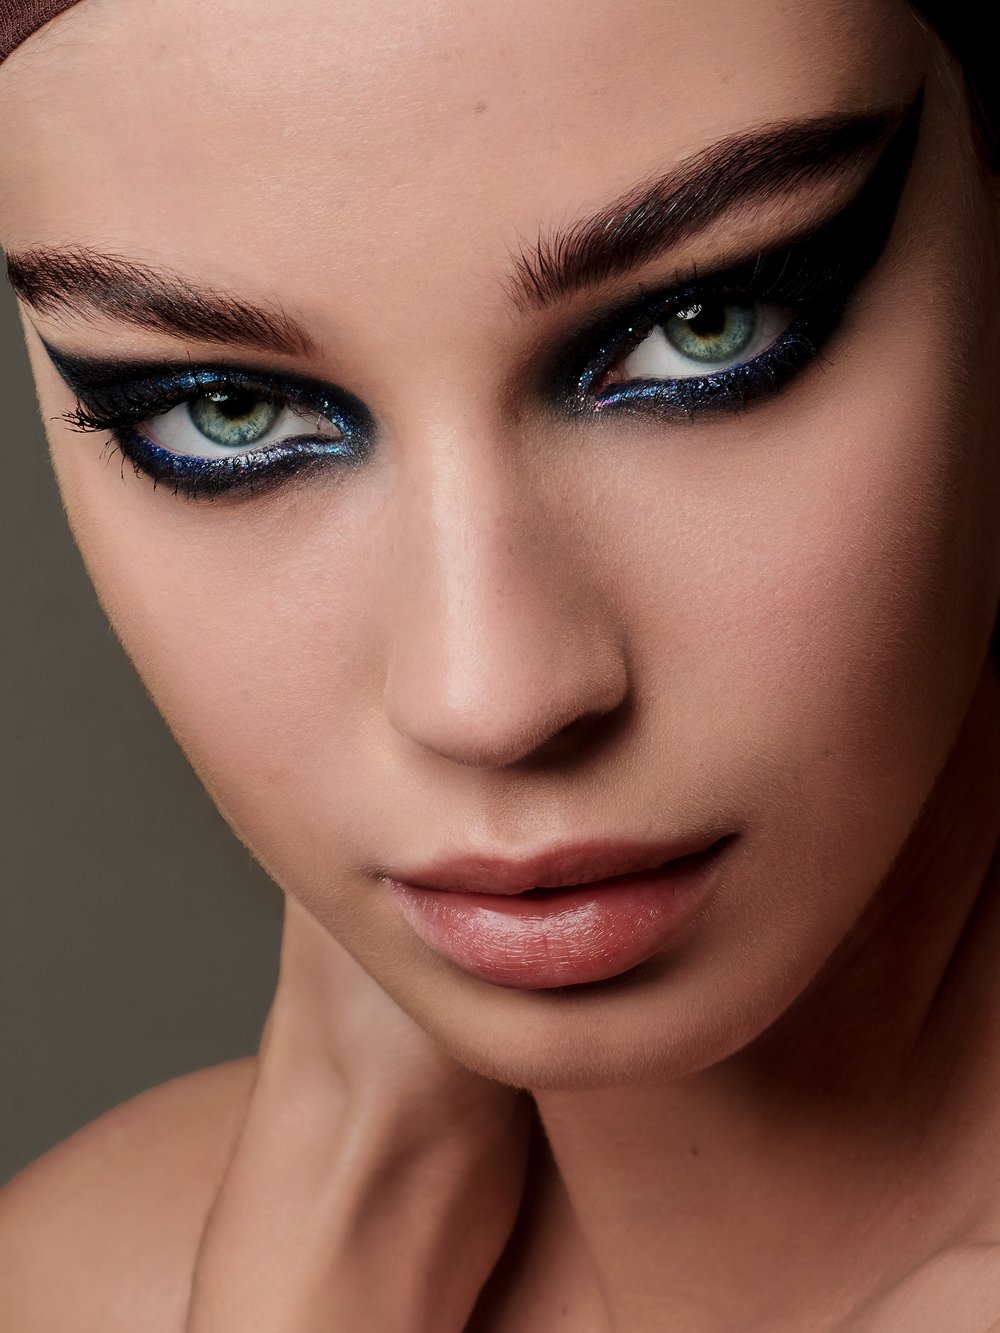 Ultimate Pro Makeup Artistry - 12 Week Course | £6995